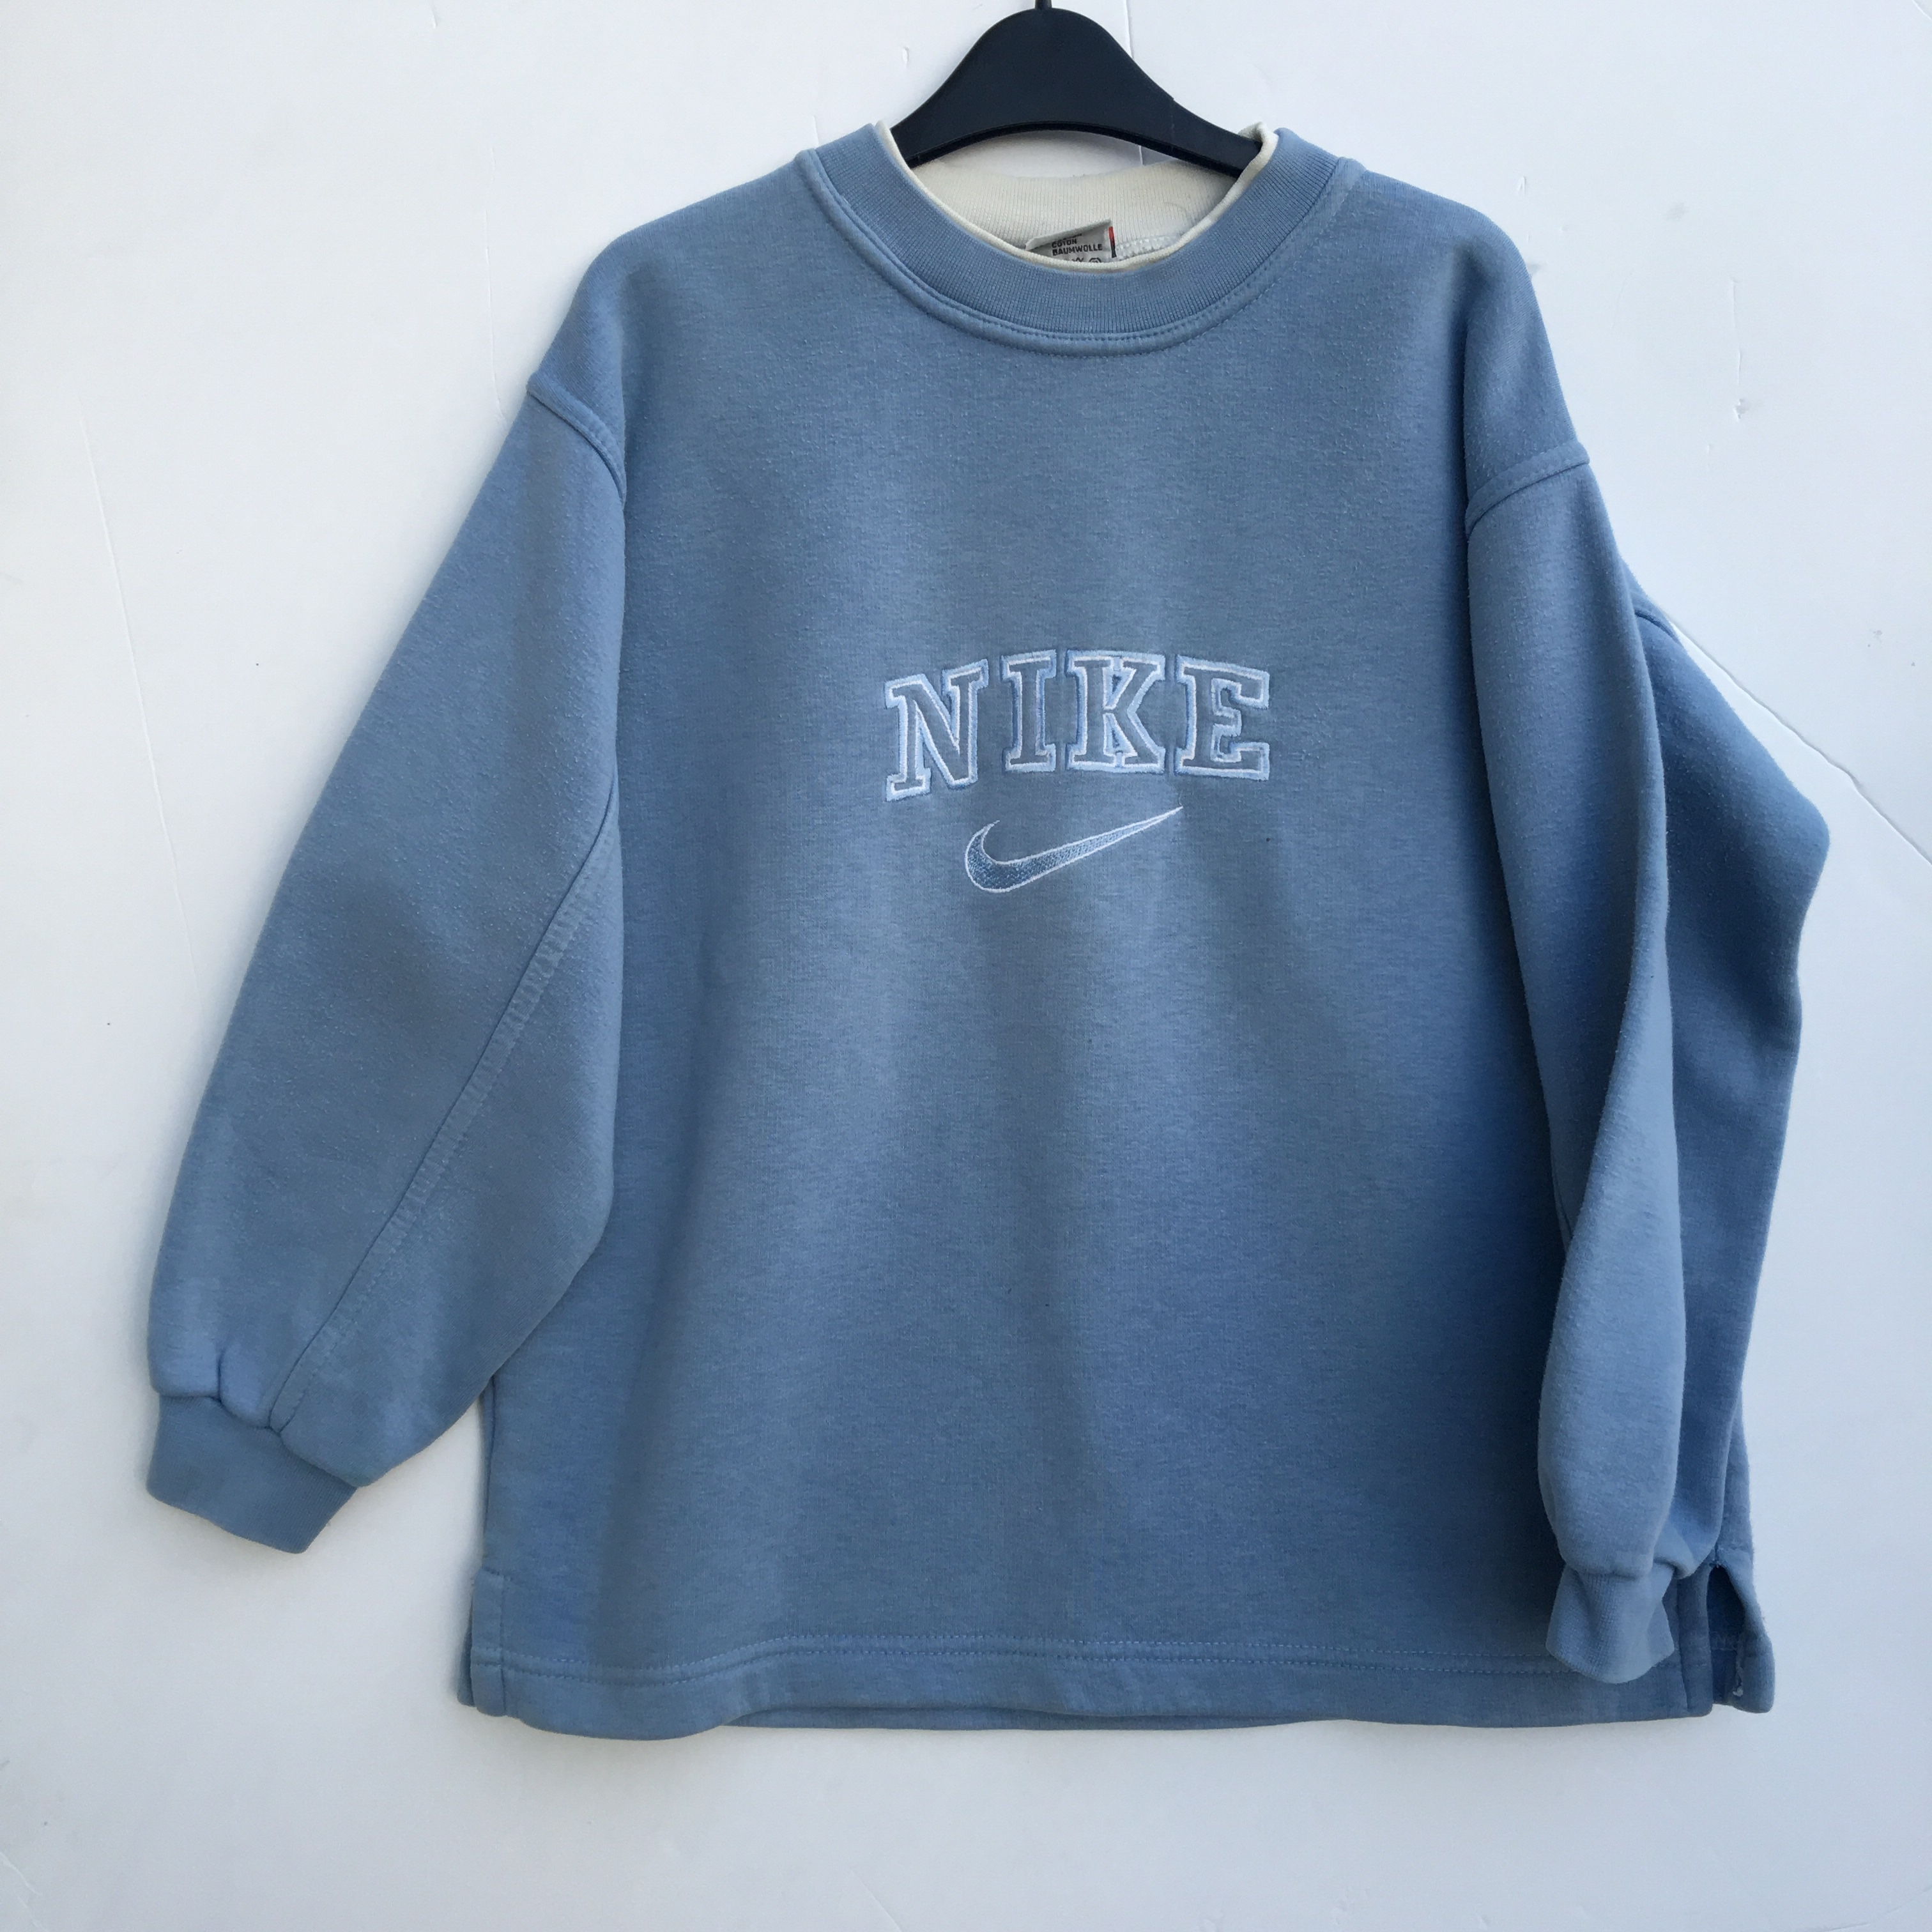 Vintage 90s Nike Baby Blue sweatshirt , would fit a , Depop